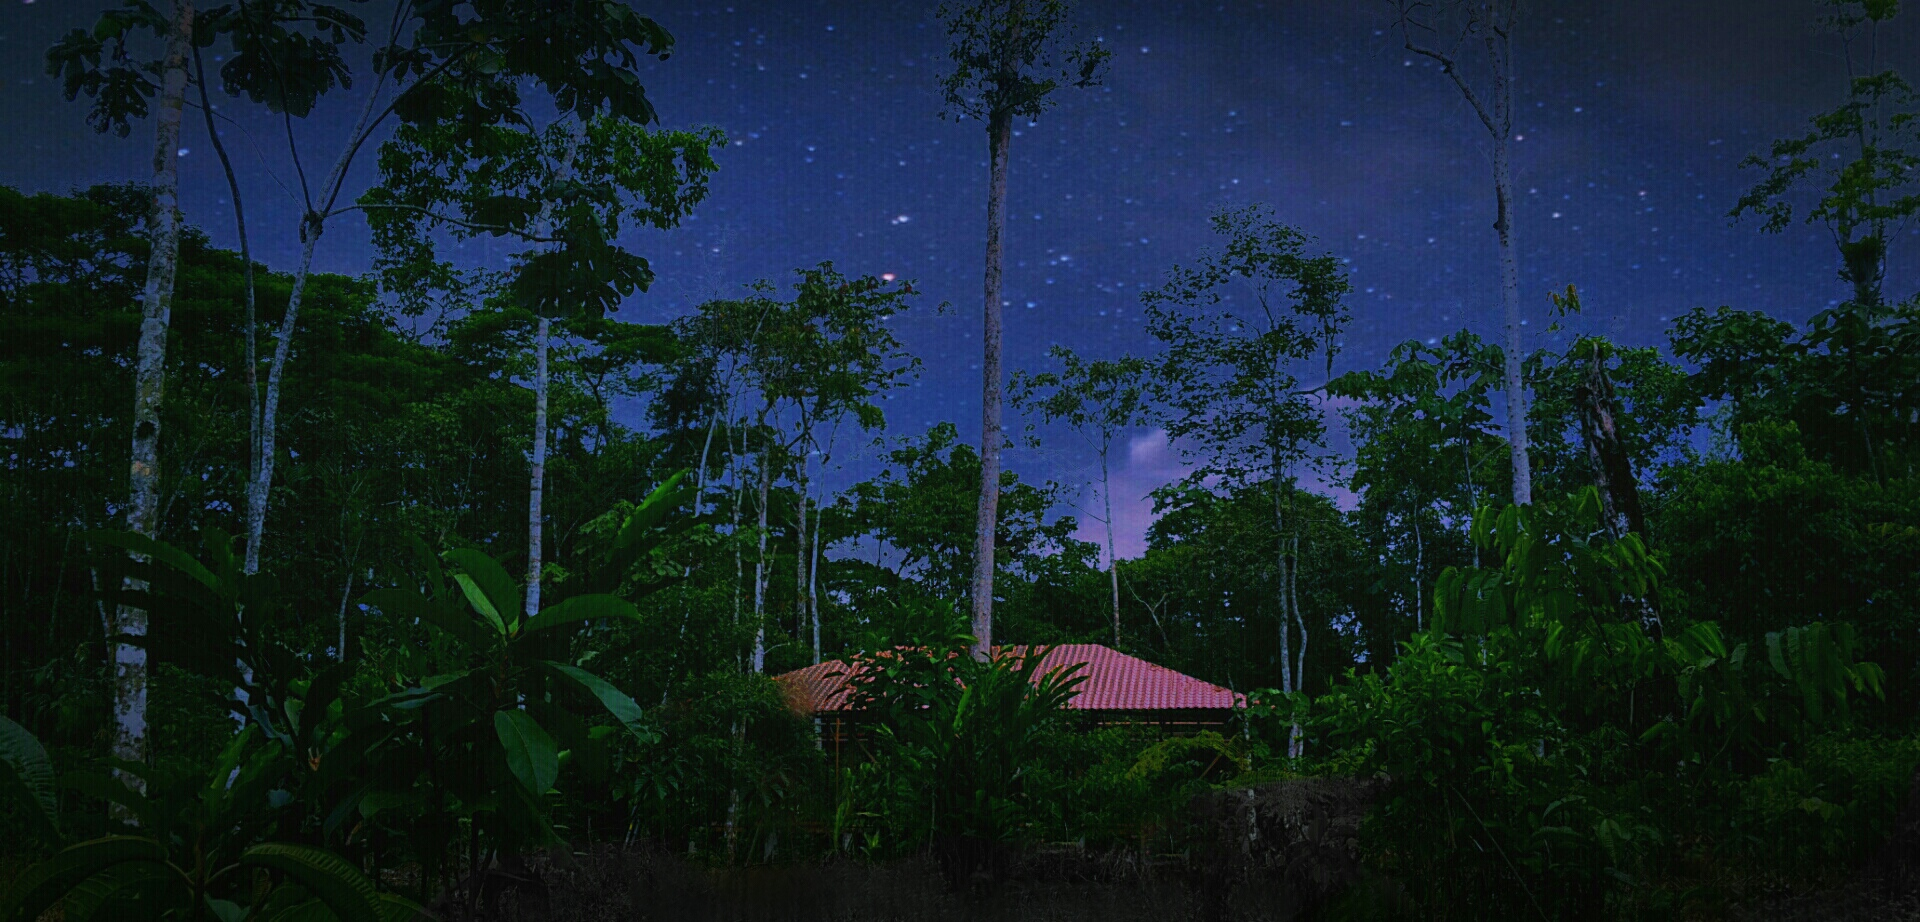 Shamanic Ceremonies Jungle night